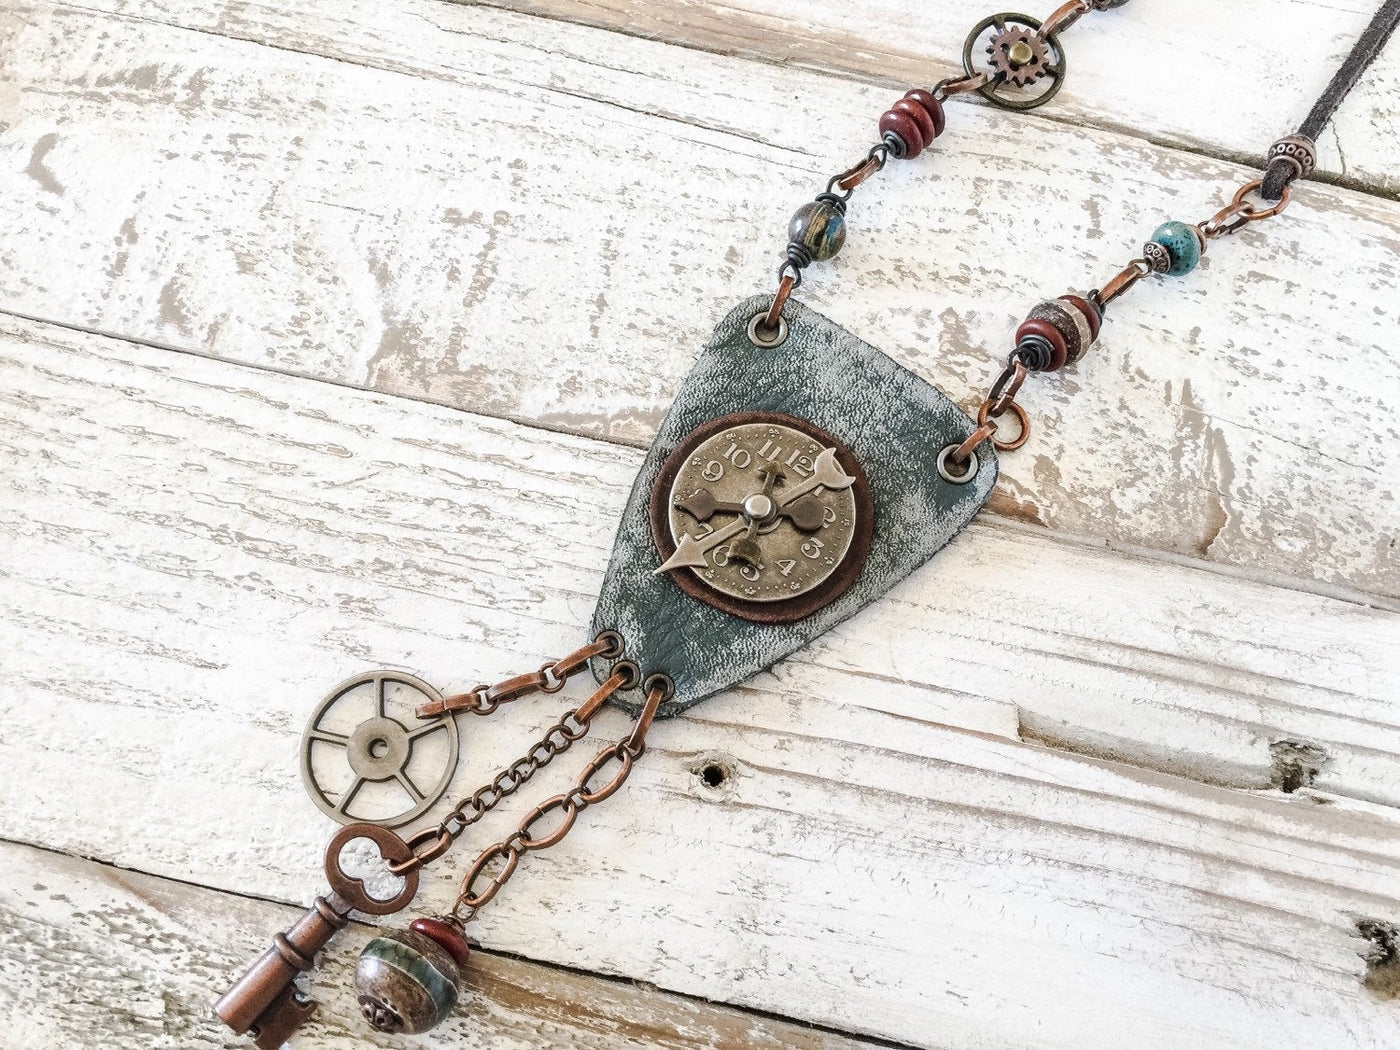 Steampunk Bohemian Clock Necklace - Agate Gear Cog Key Stone Antique Vintage Hippie Leather Boho Earthy Rustic Gypsy Unique Handmade Jewelry